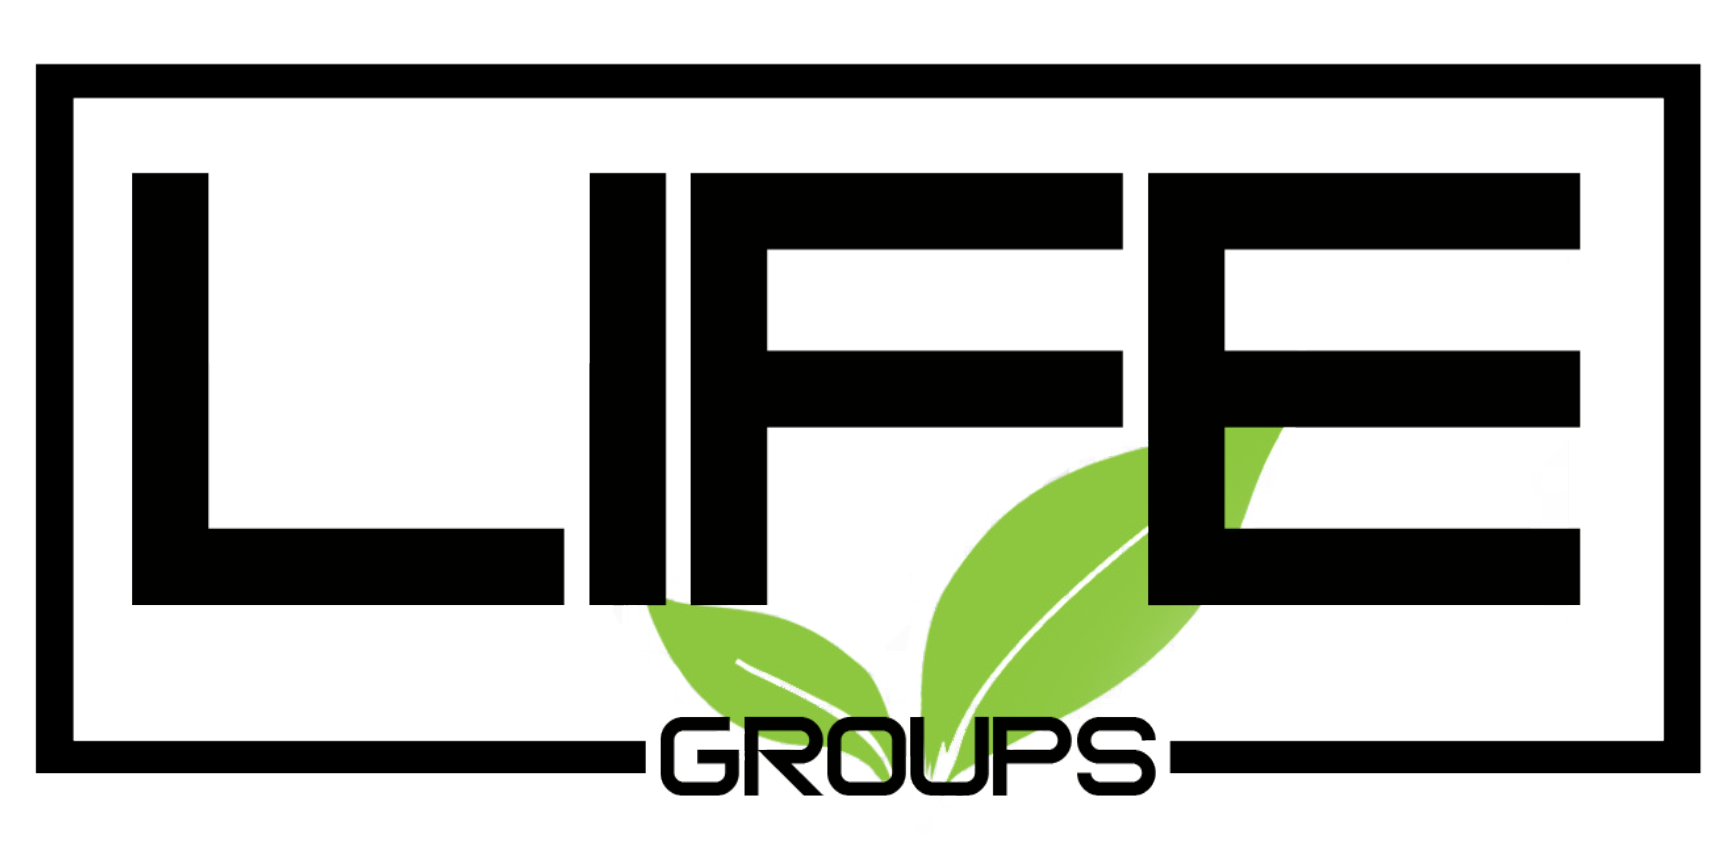 Are you engaged in community? - Join a Life Group this January!